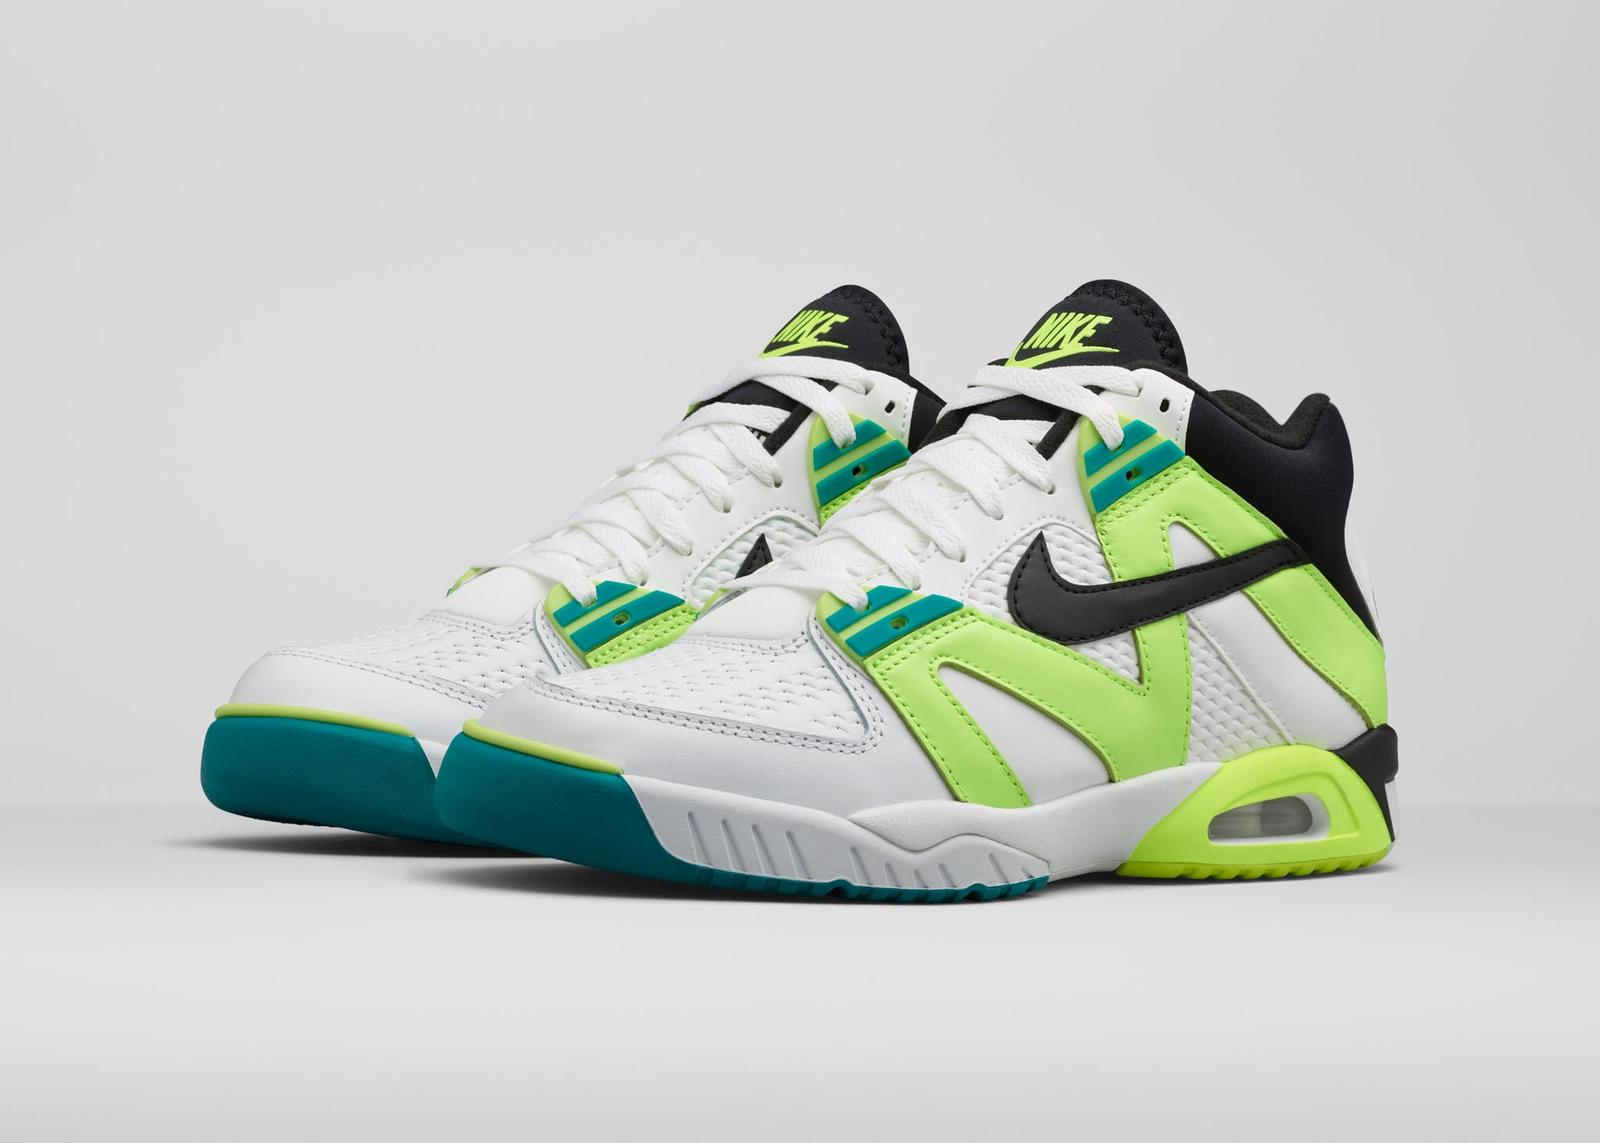 ANDRE AGASSI NIKE AIR TECH CHALLENGE III 2015